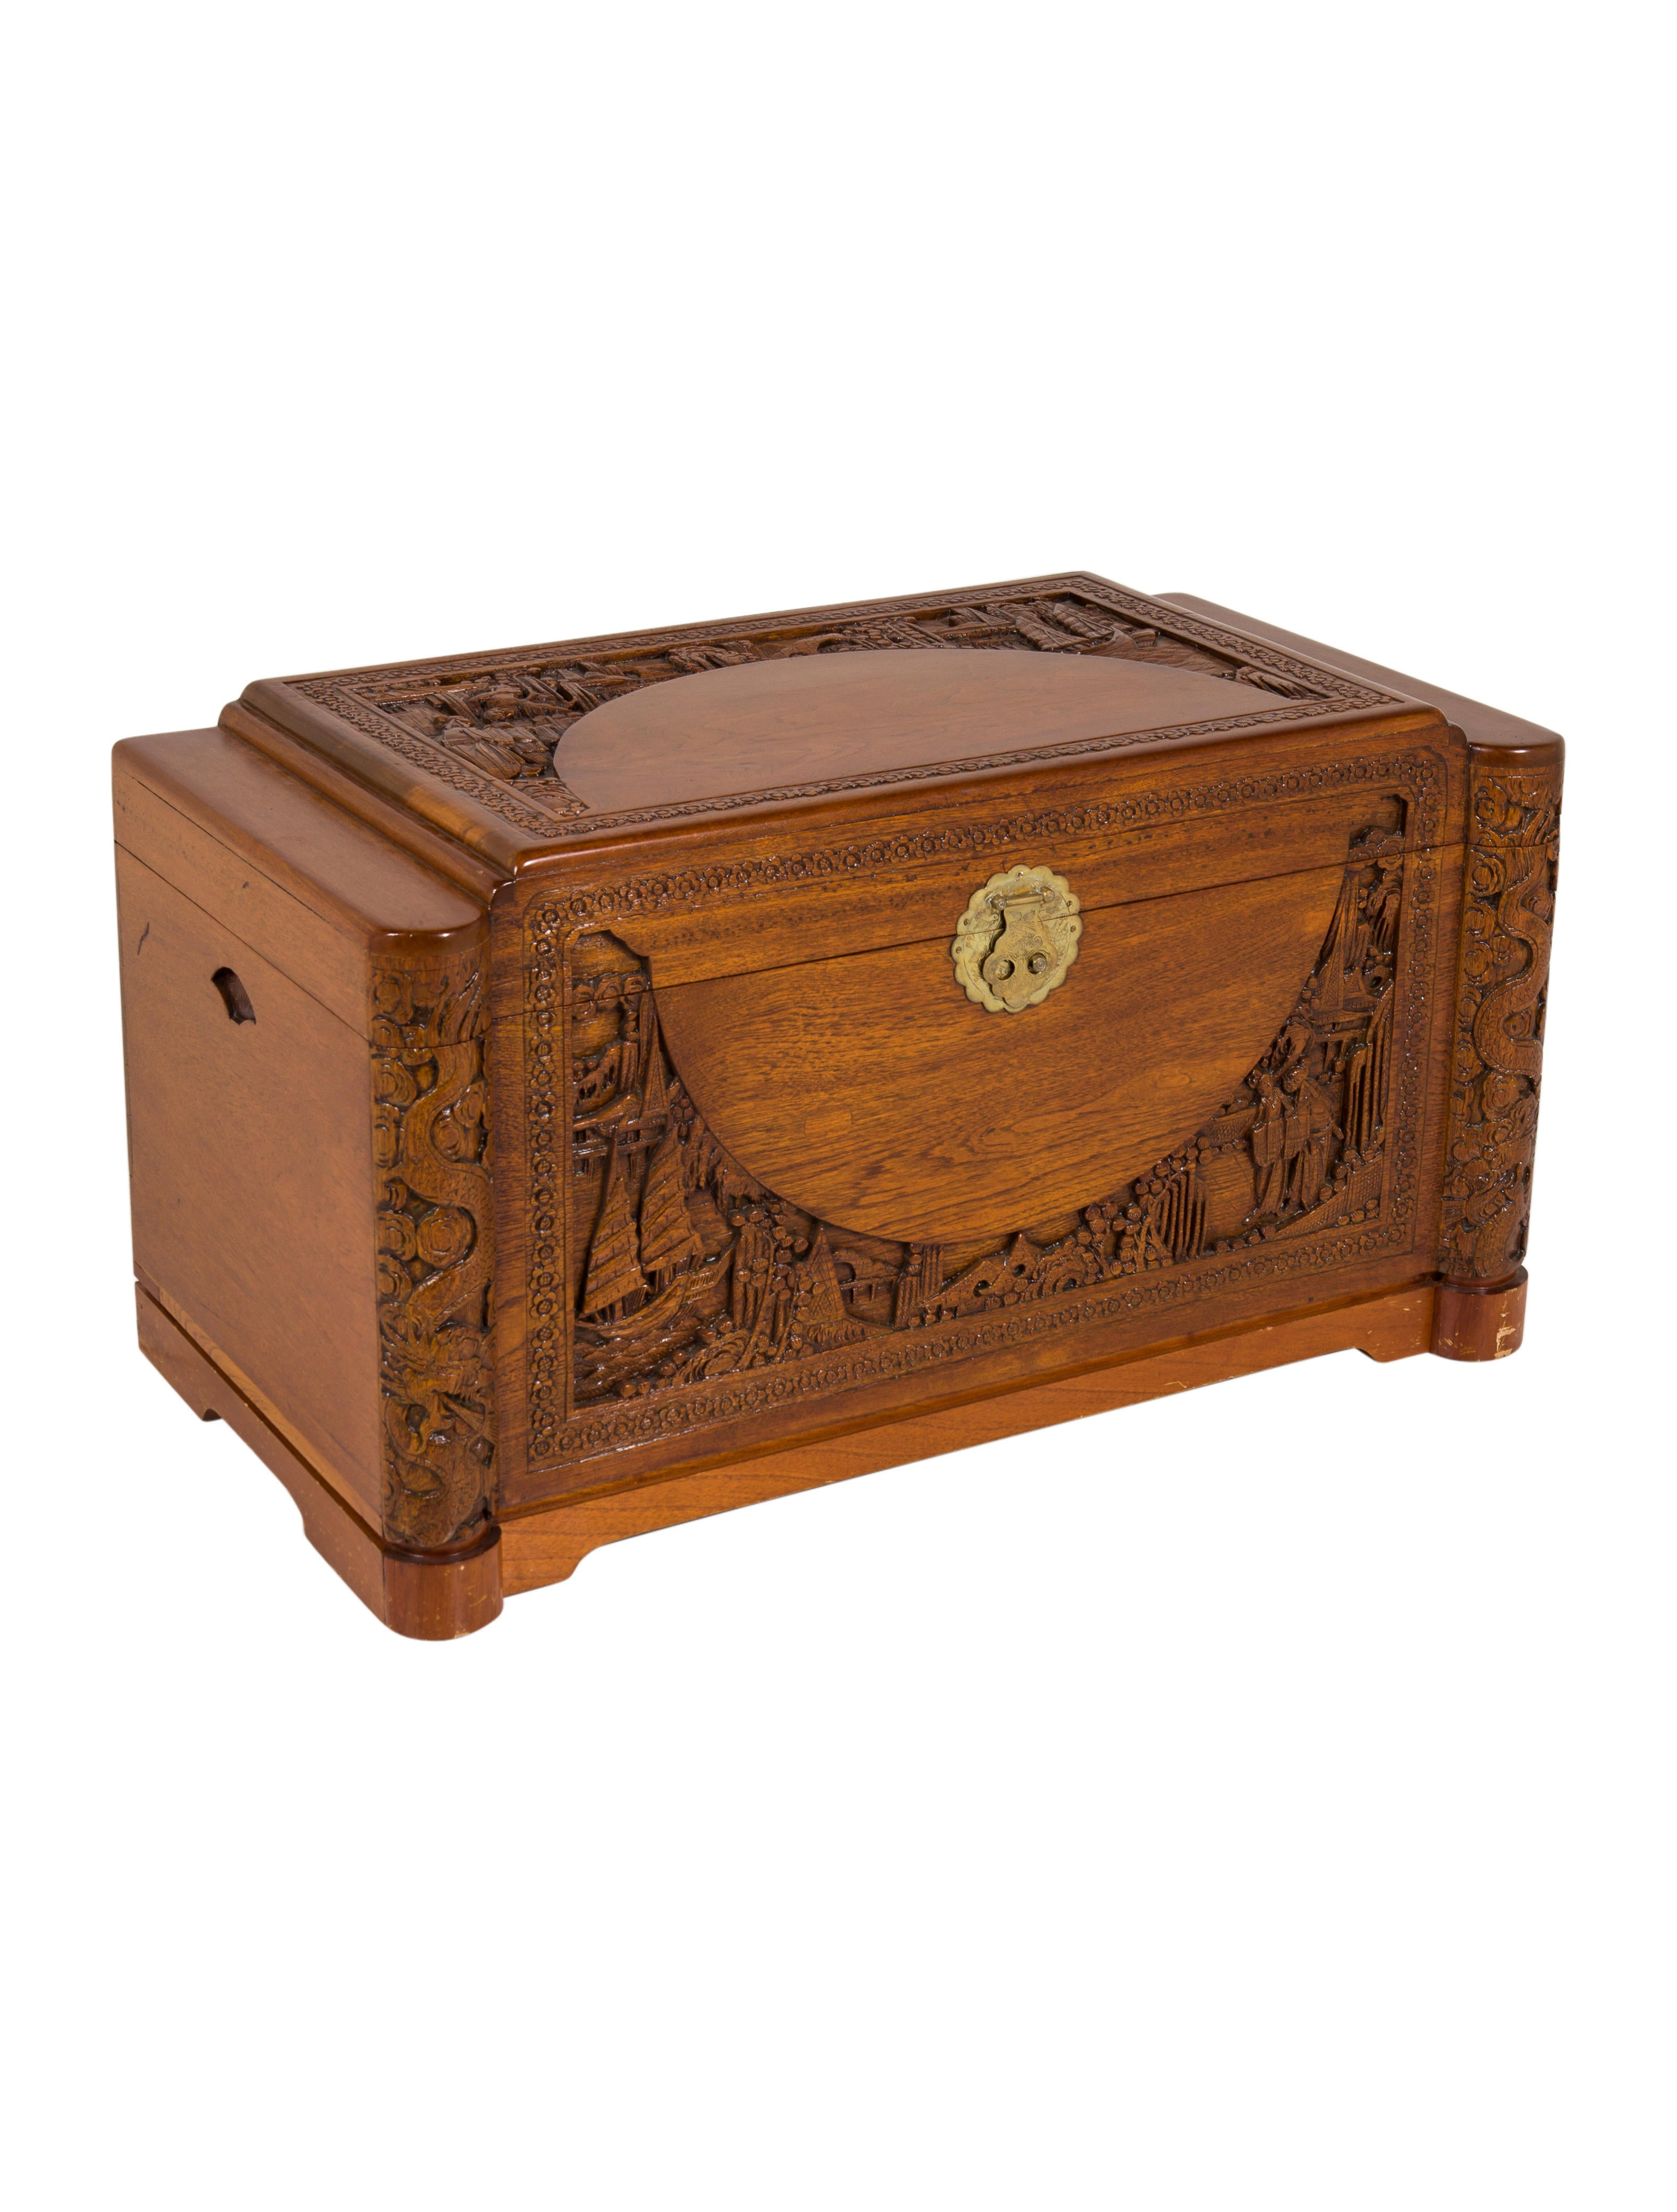 Carved wood chest furniture furni the realreal